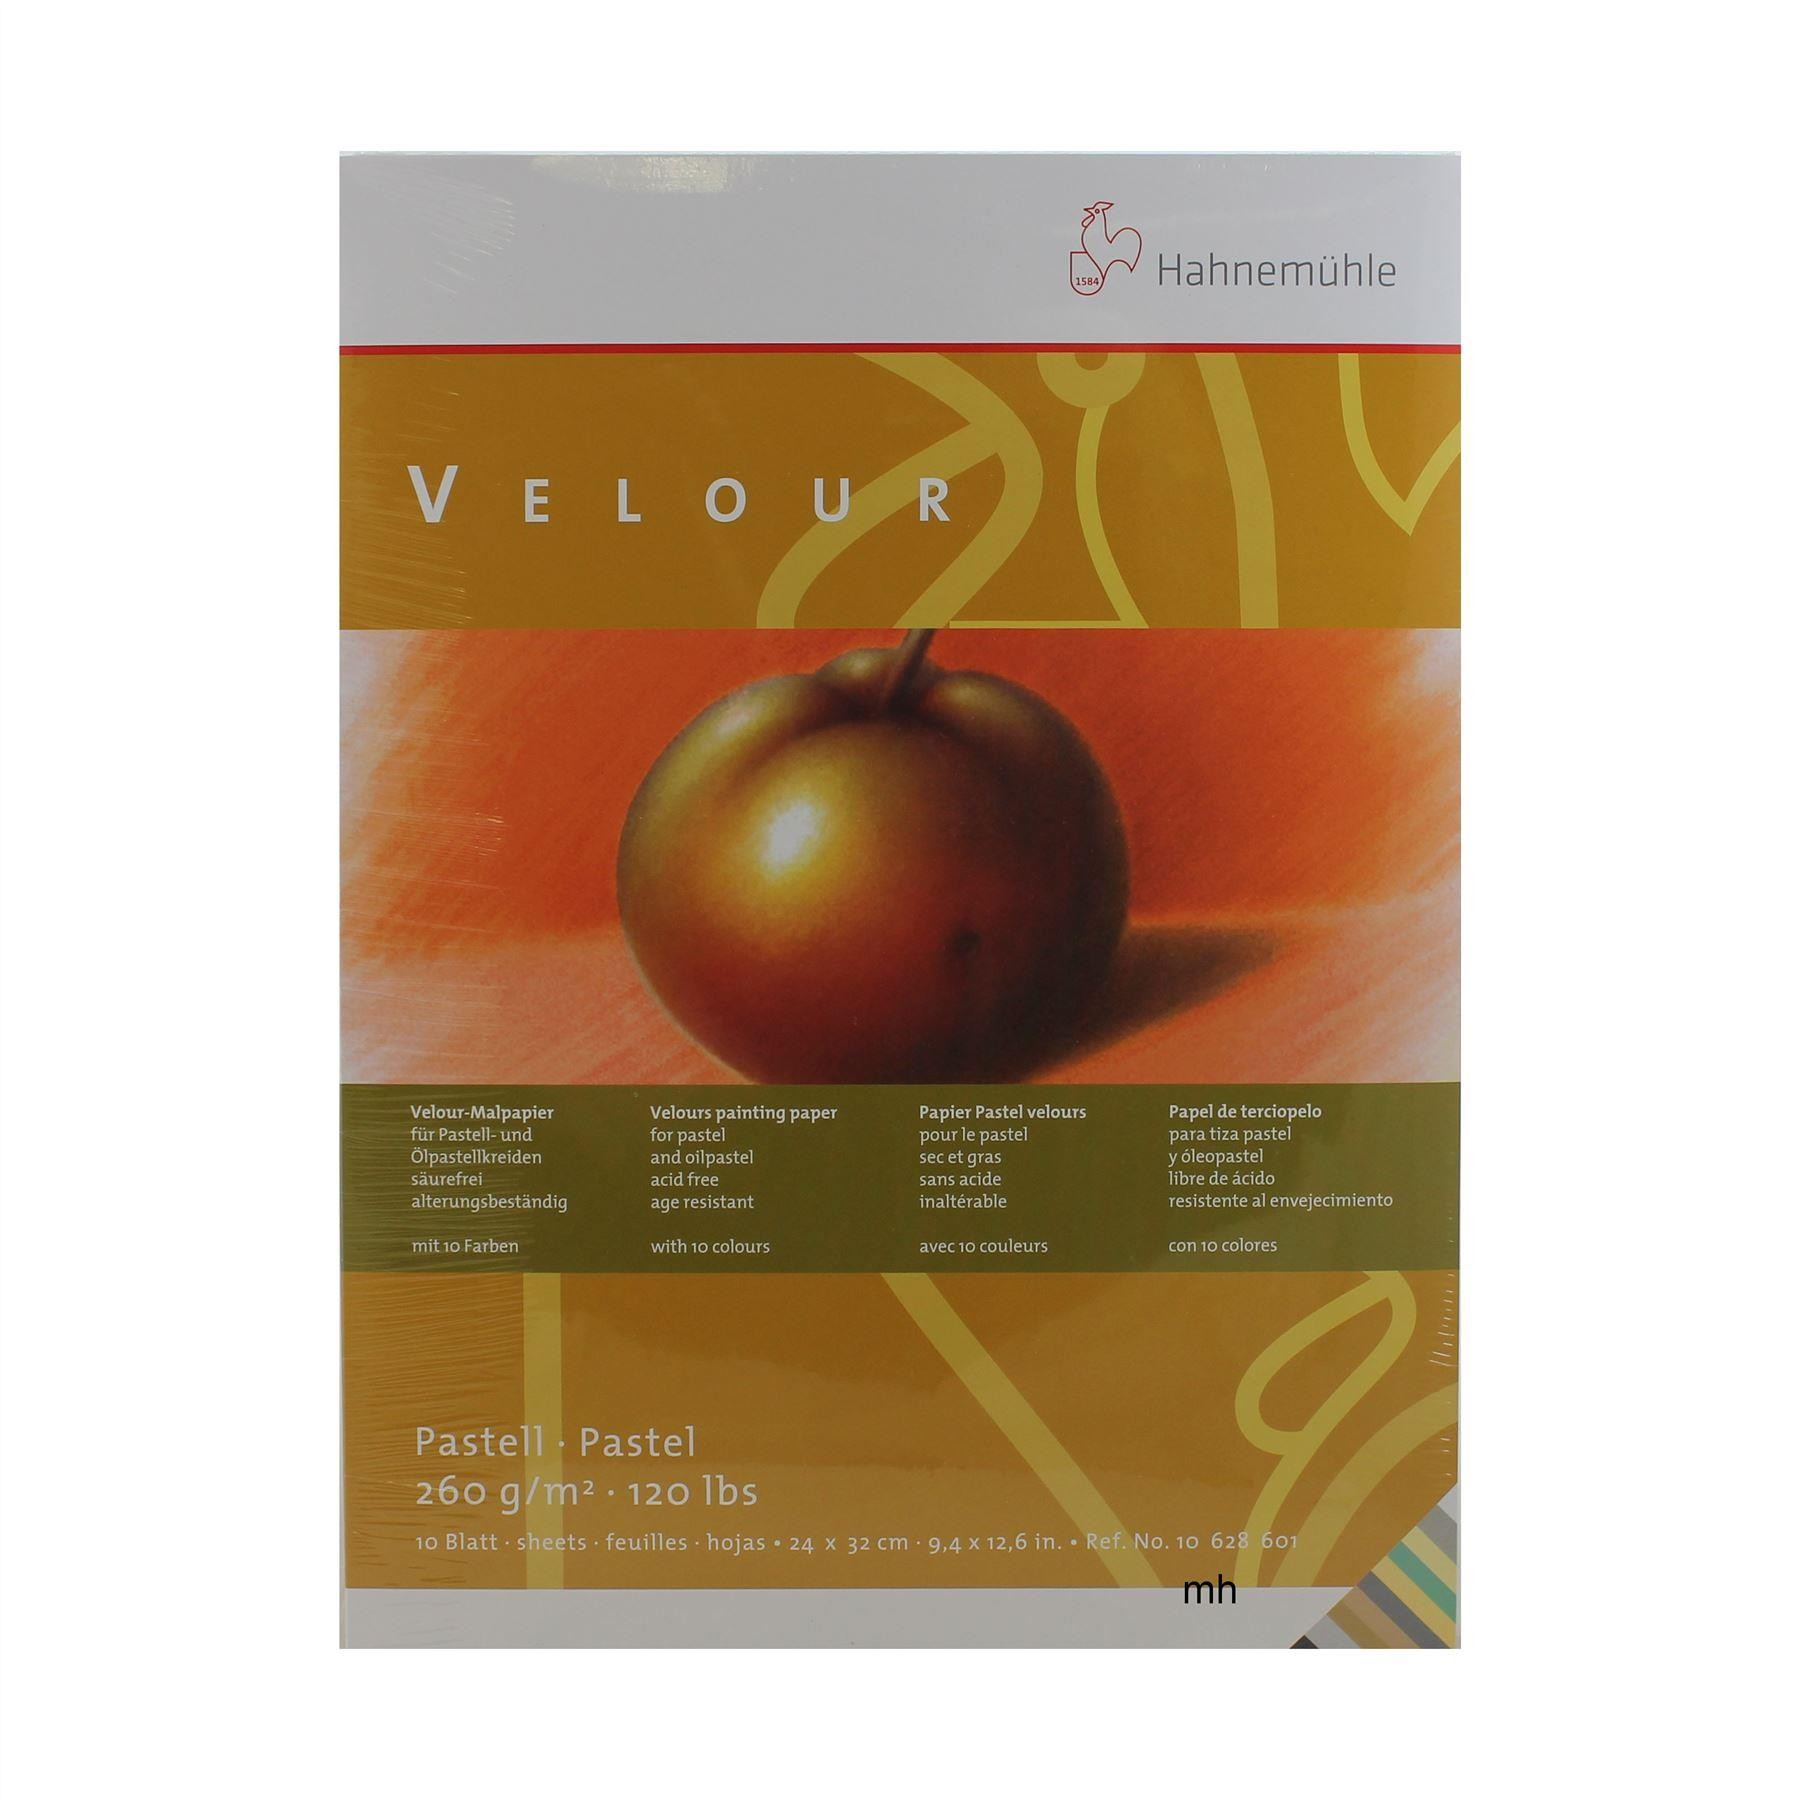 Hahnemühle Velour Pastel Paper Pad - 24x32cm - 10 Assorted Colour Sheets 260gsm